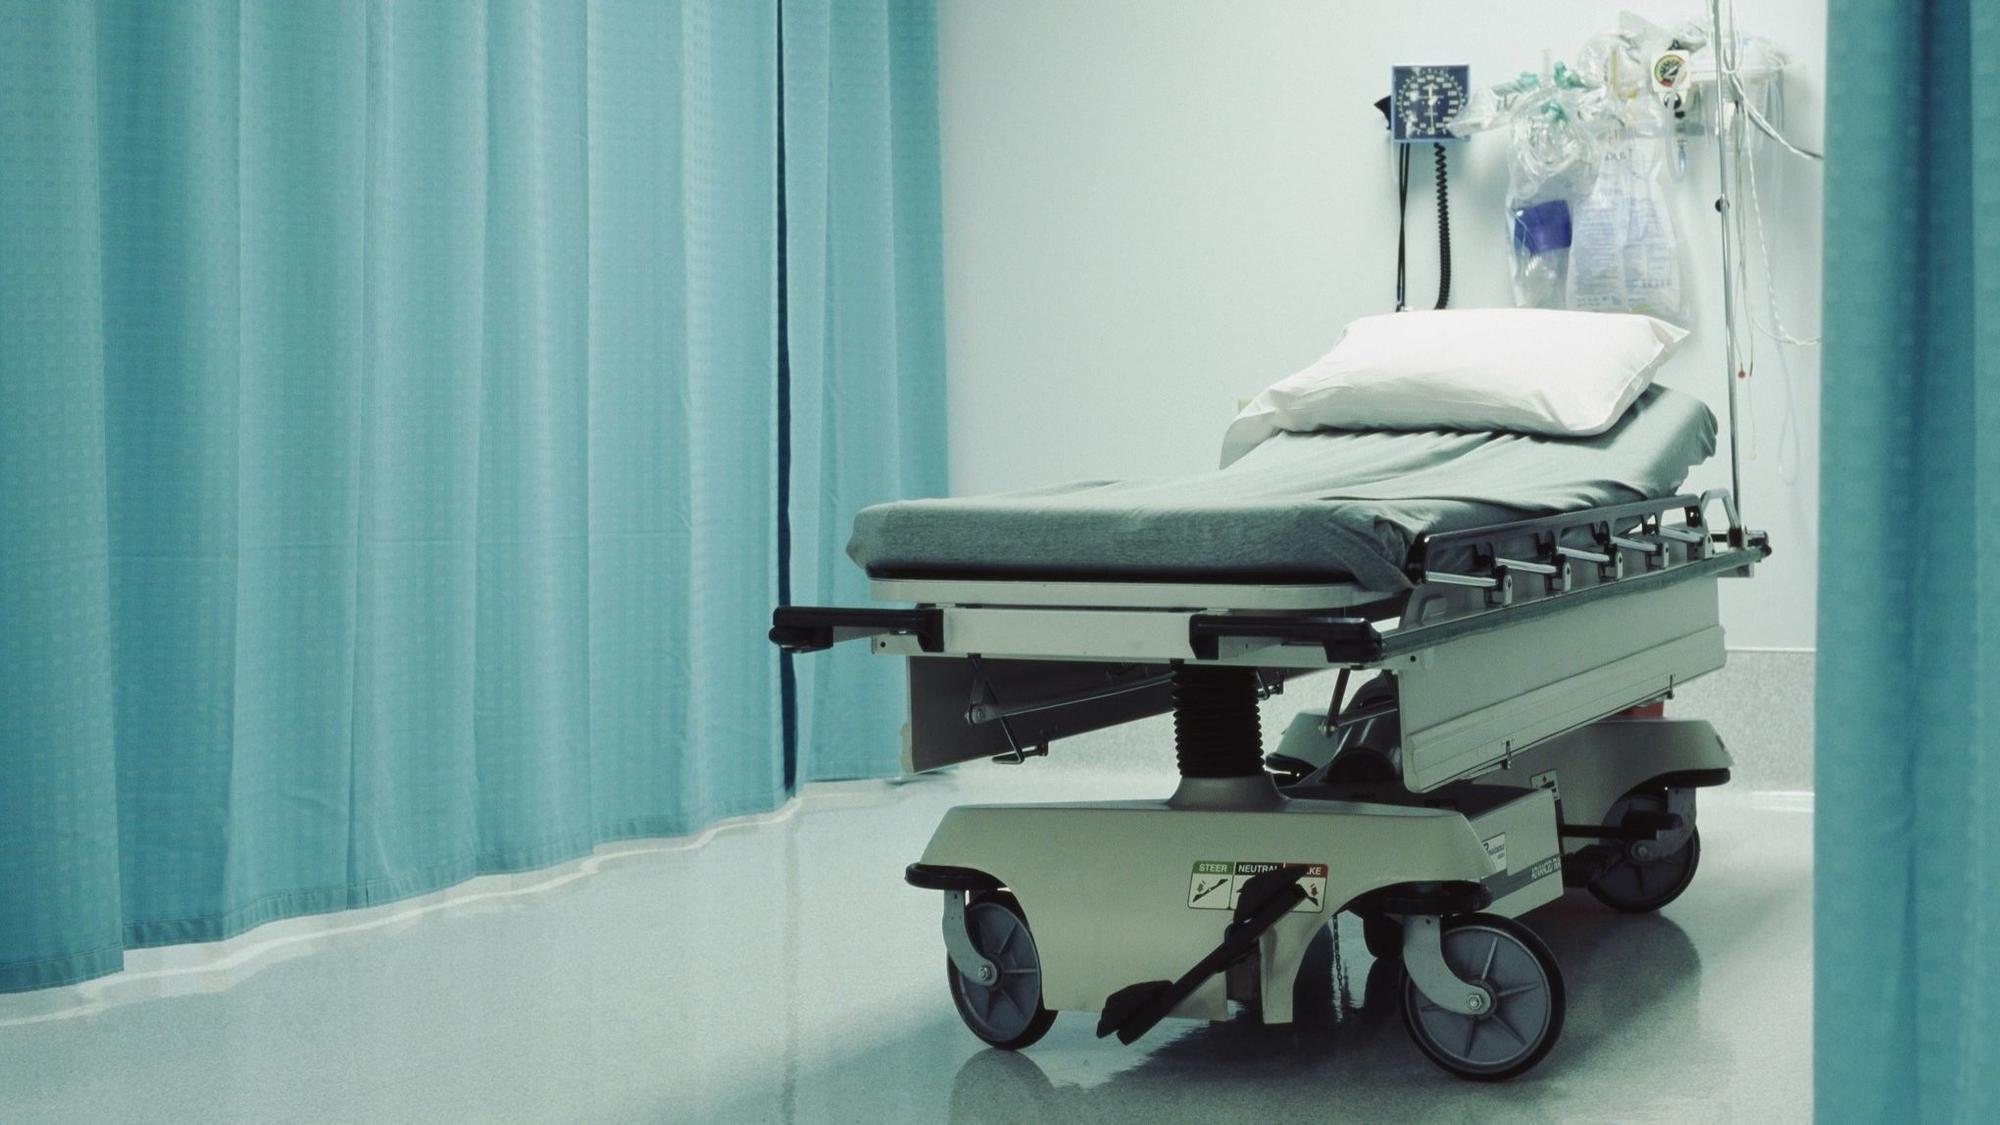 Another legal battle over life support shows the need for advance directives